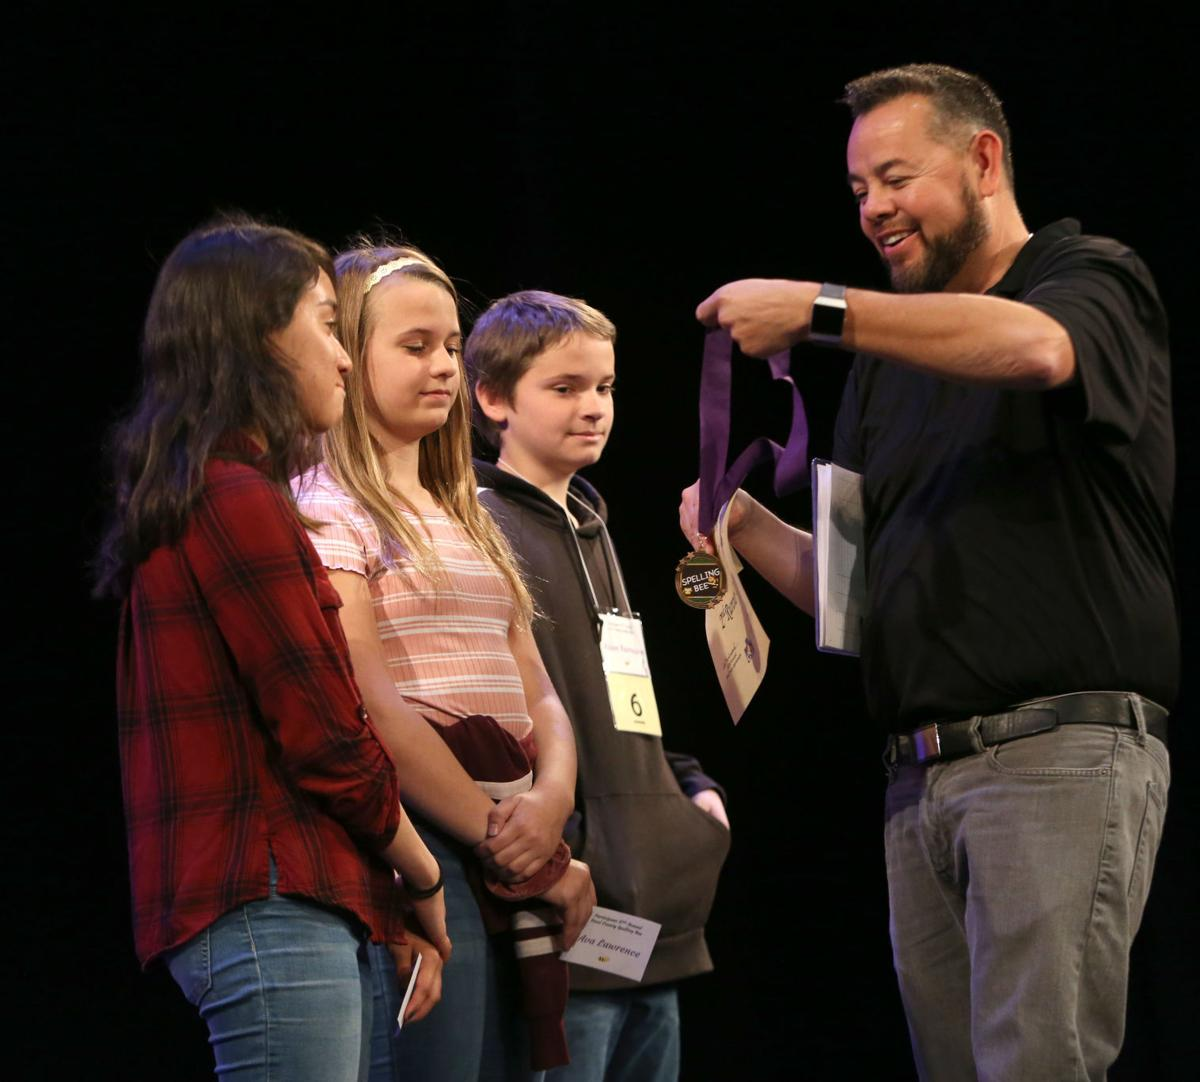 Pina County Spelling Bee